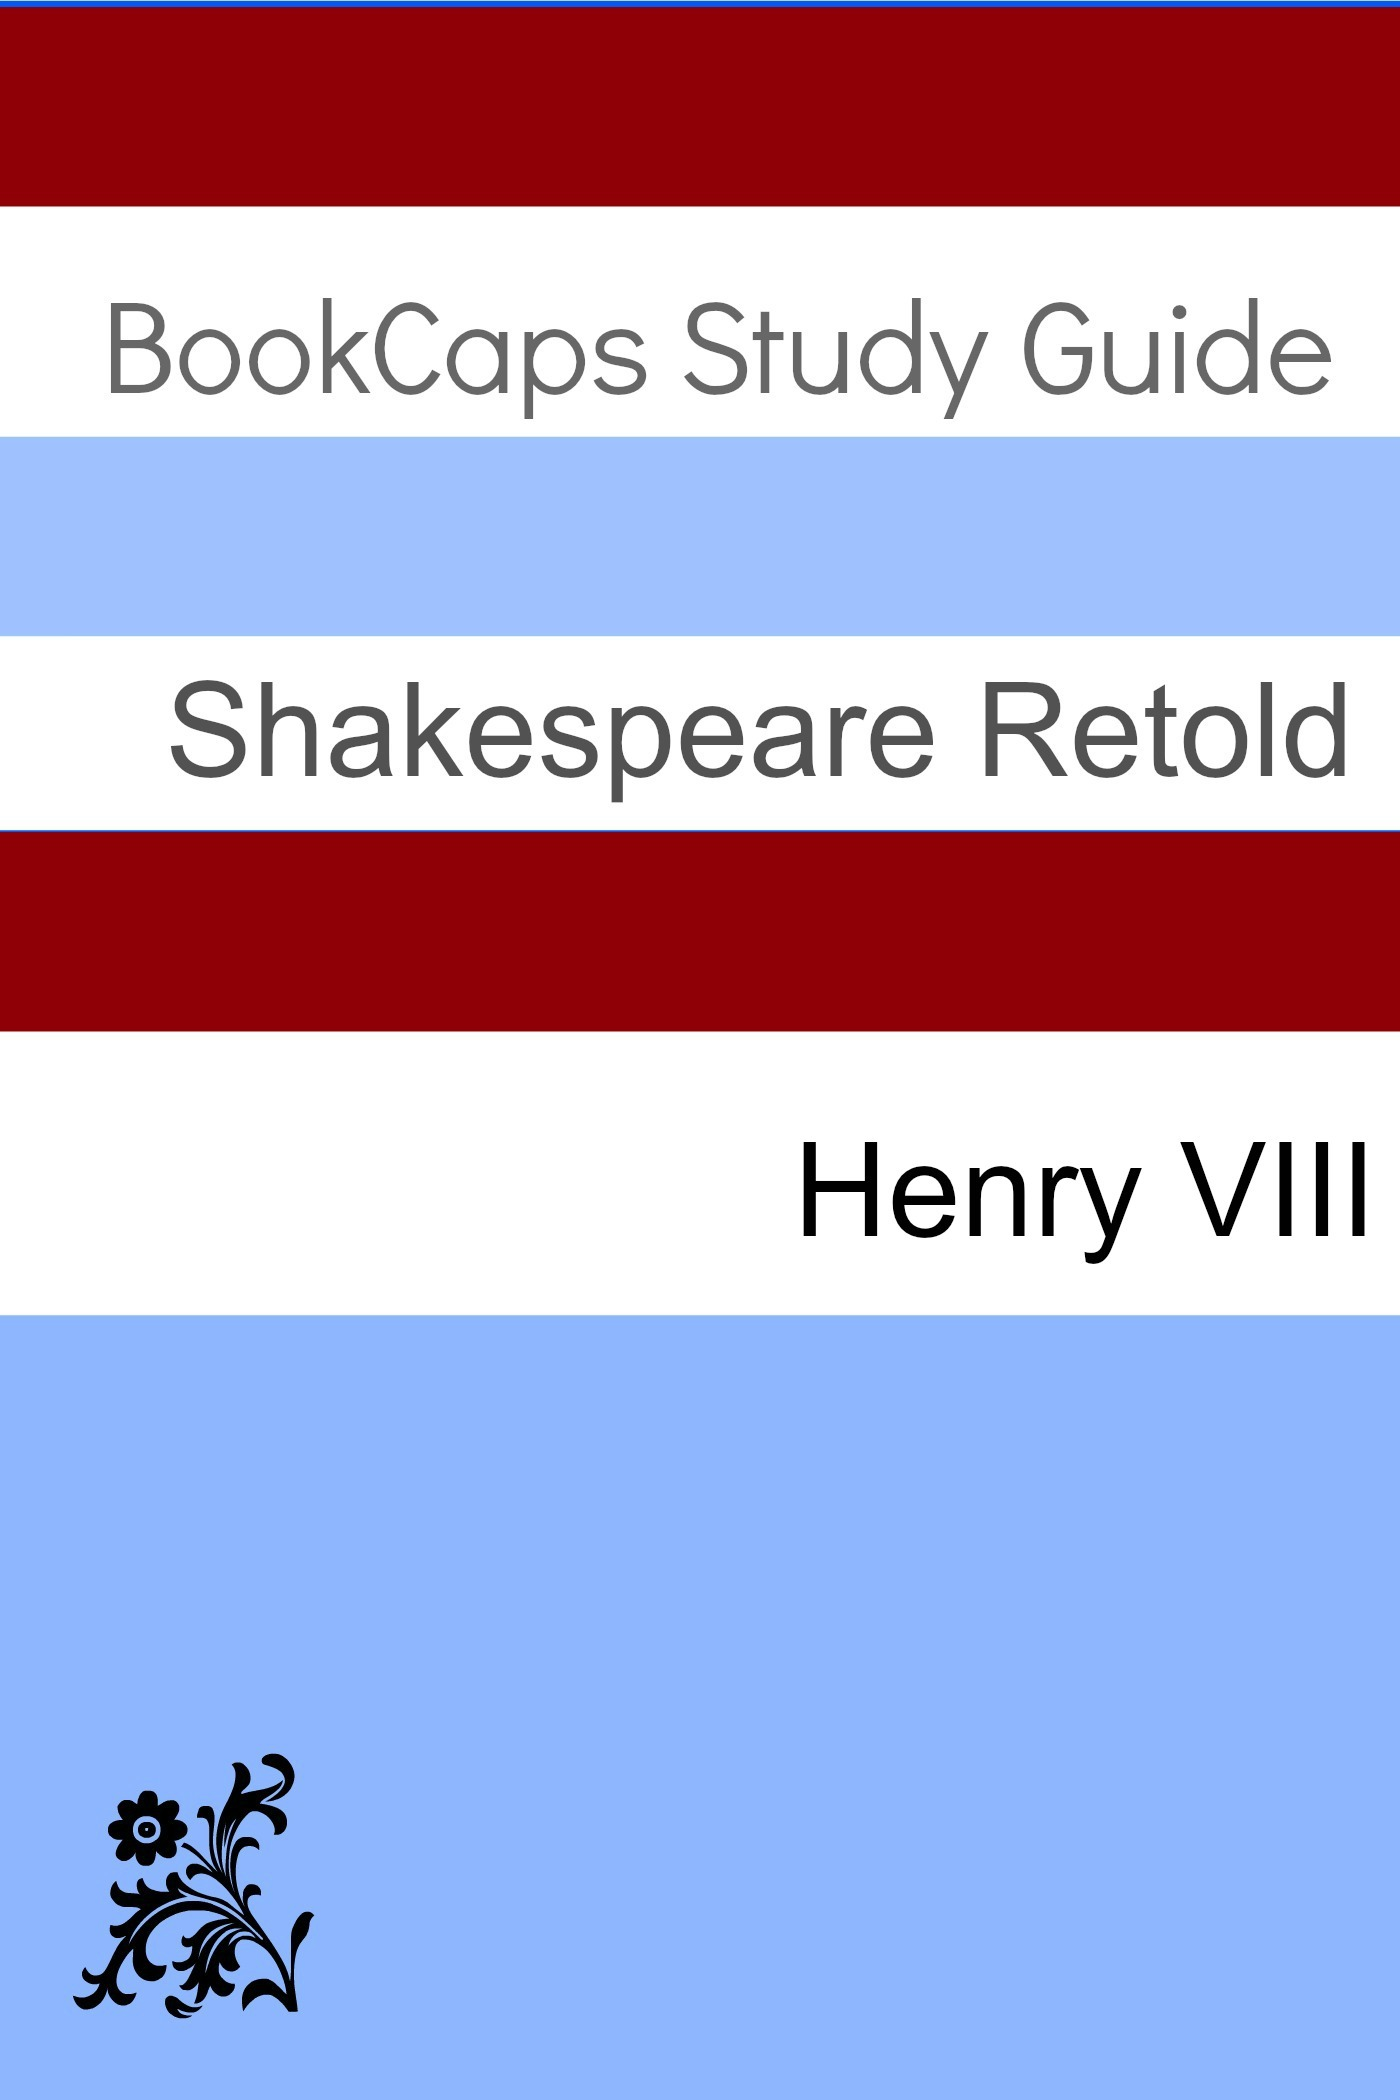 BookCaps - Henry VIII In Plain and Simple English (A Modern Translation and the Original Version)